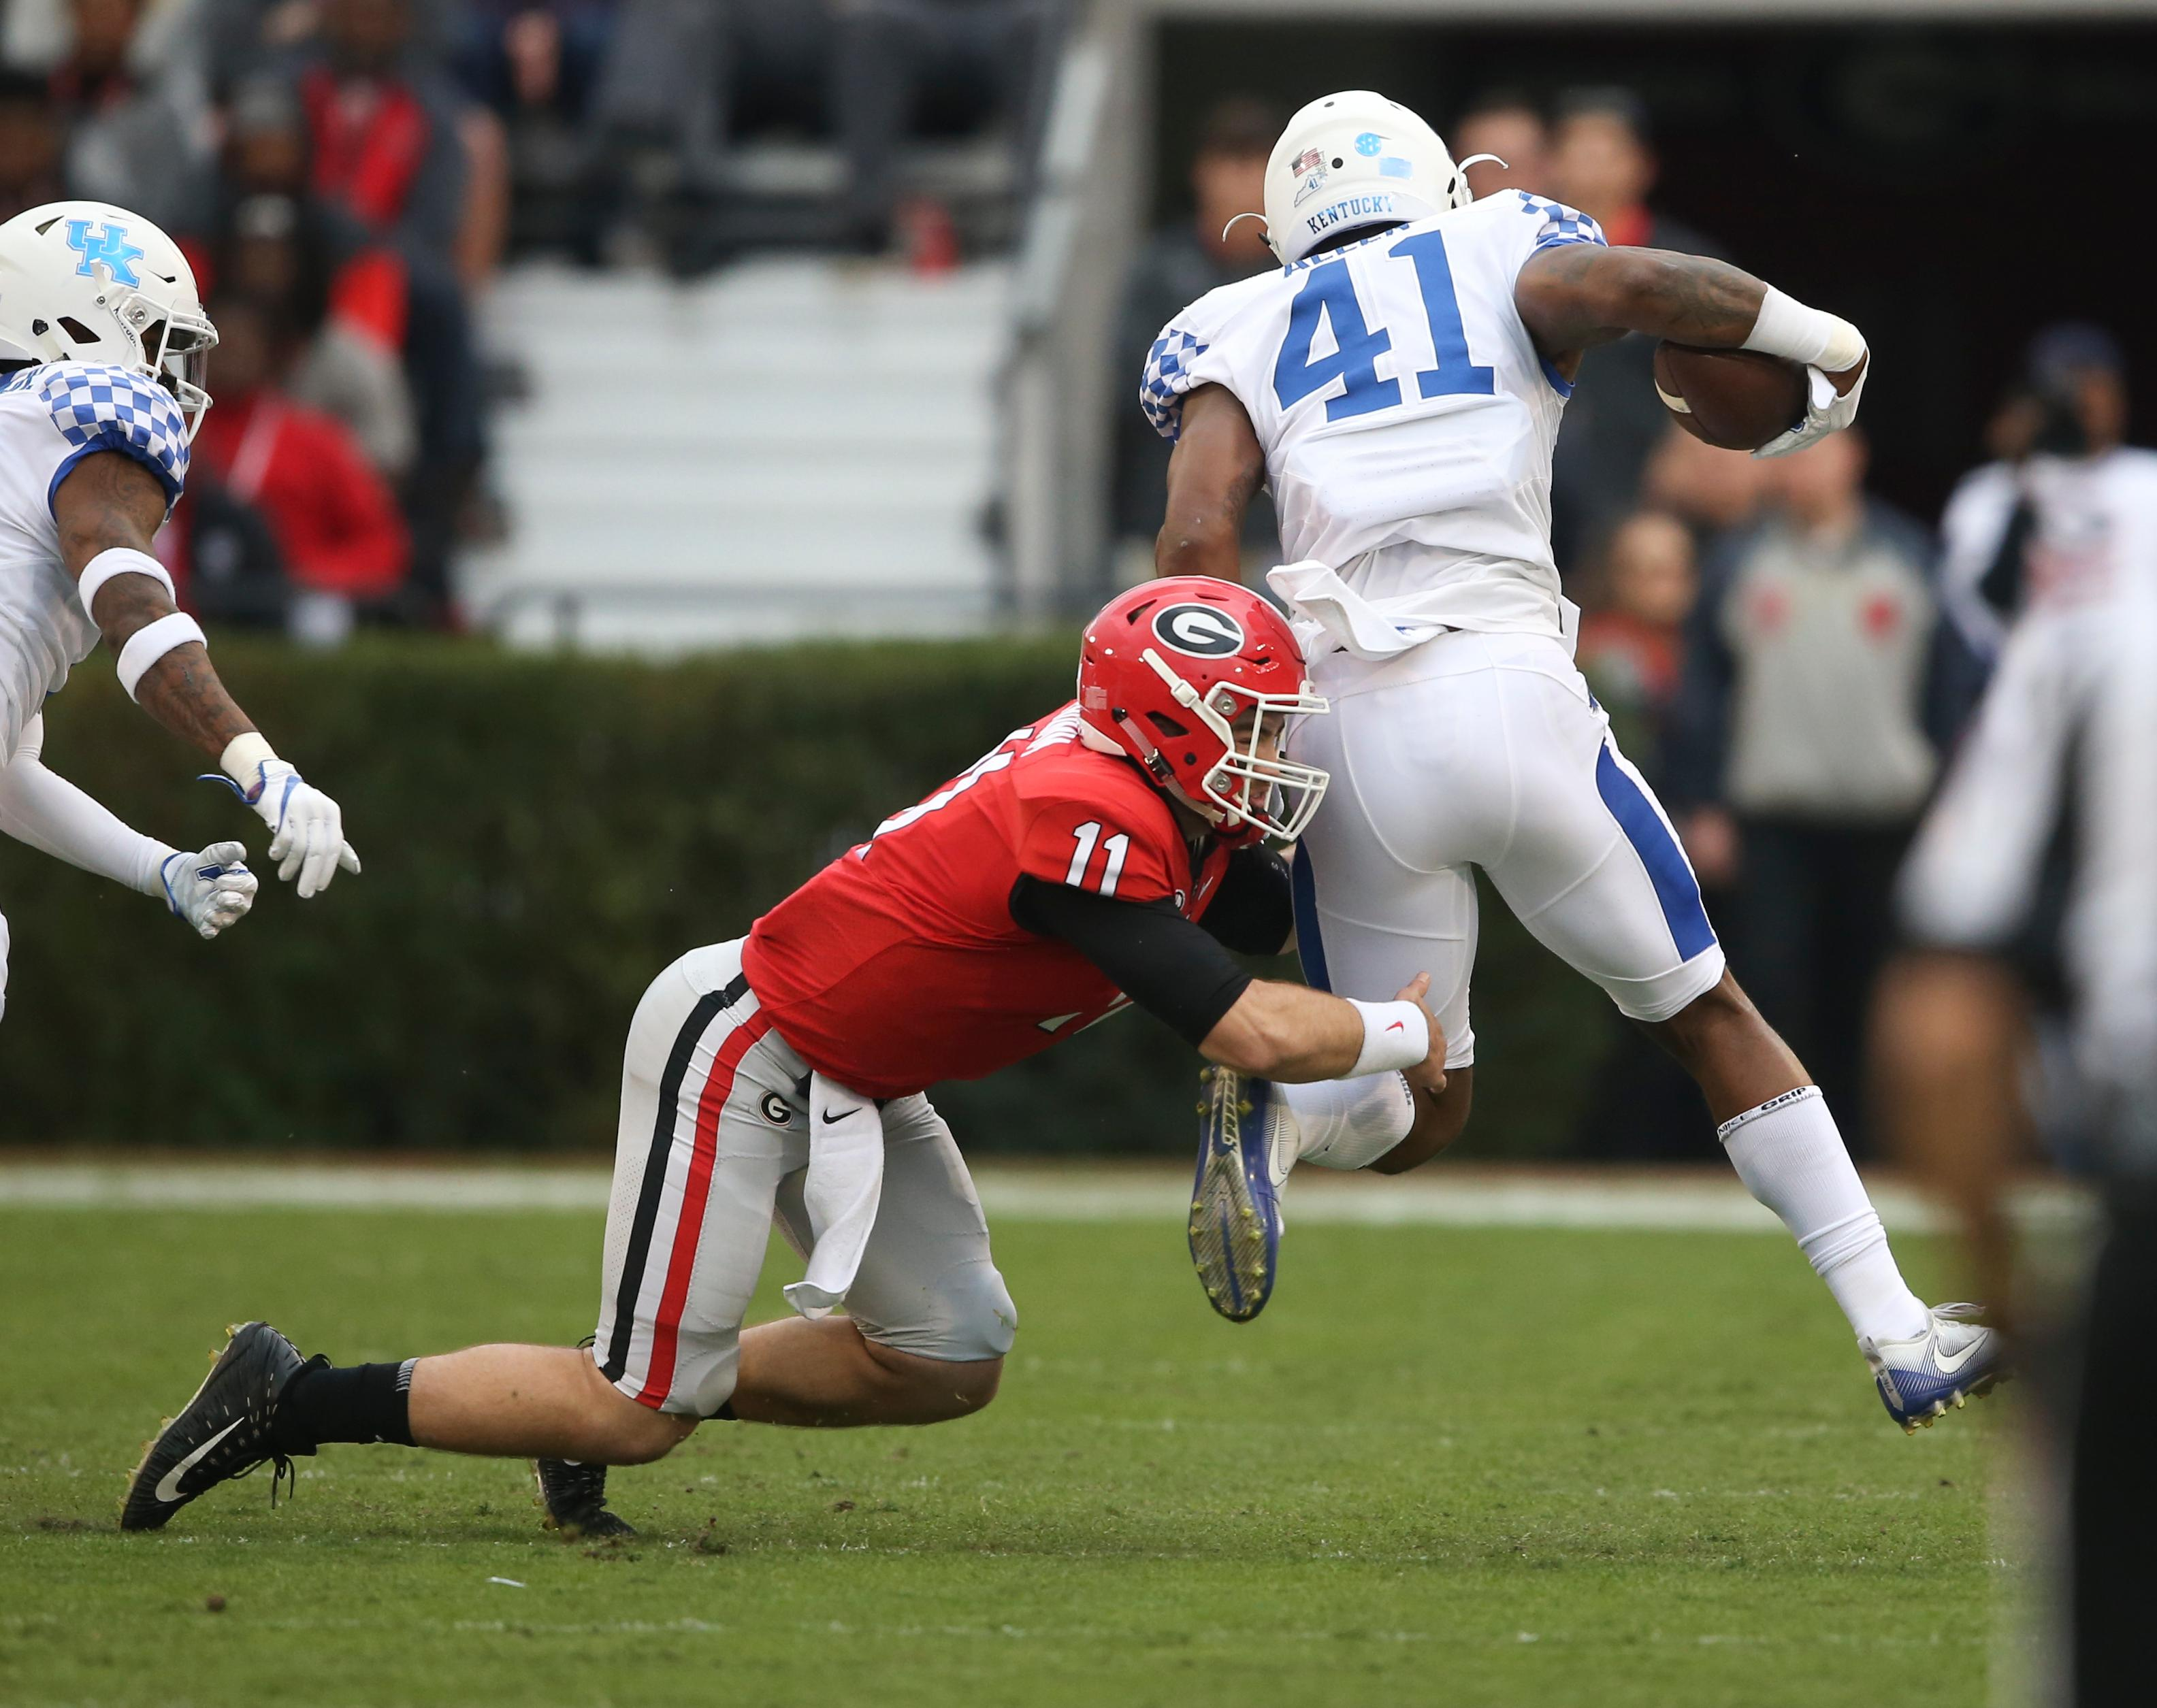 Kentucky linebacker Josh Allen (41) is tackled by Georgia quarterback Jake Fromm (11) after intercepting Fromm's pass in the first half of an NCAA college football game Saturday, Nov. 18, 2017, in Athens, Ga. (AP Photo/John Bazemore)